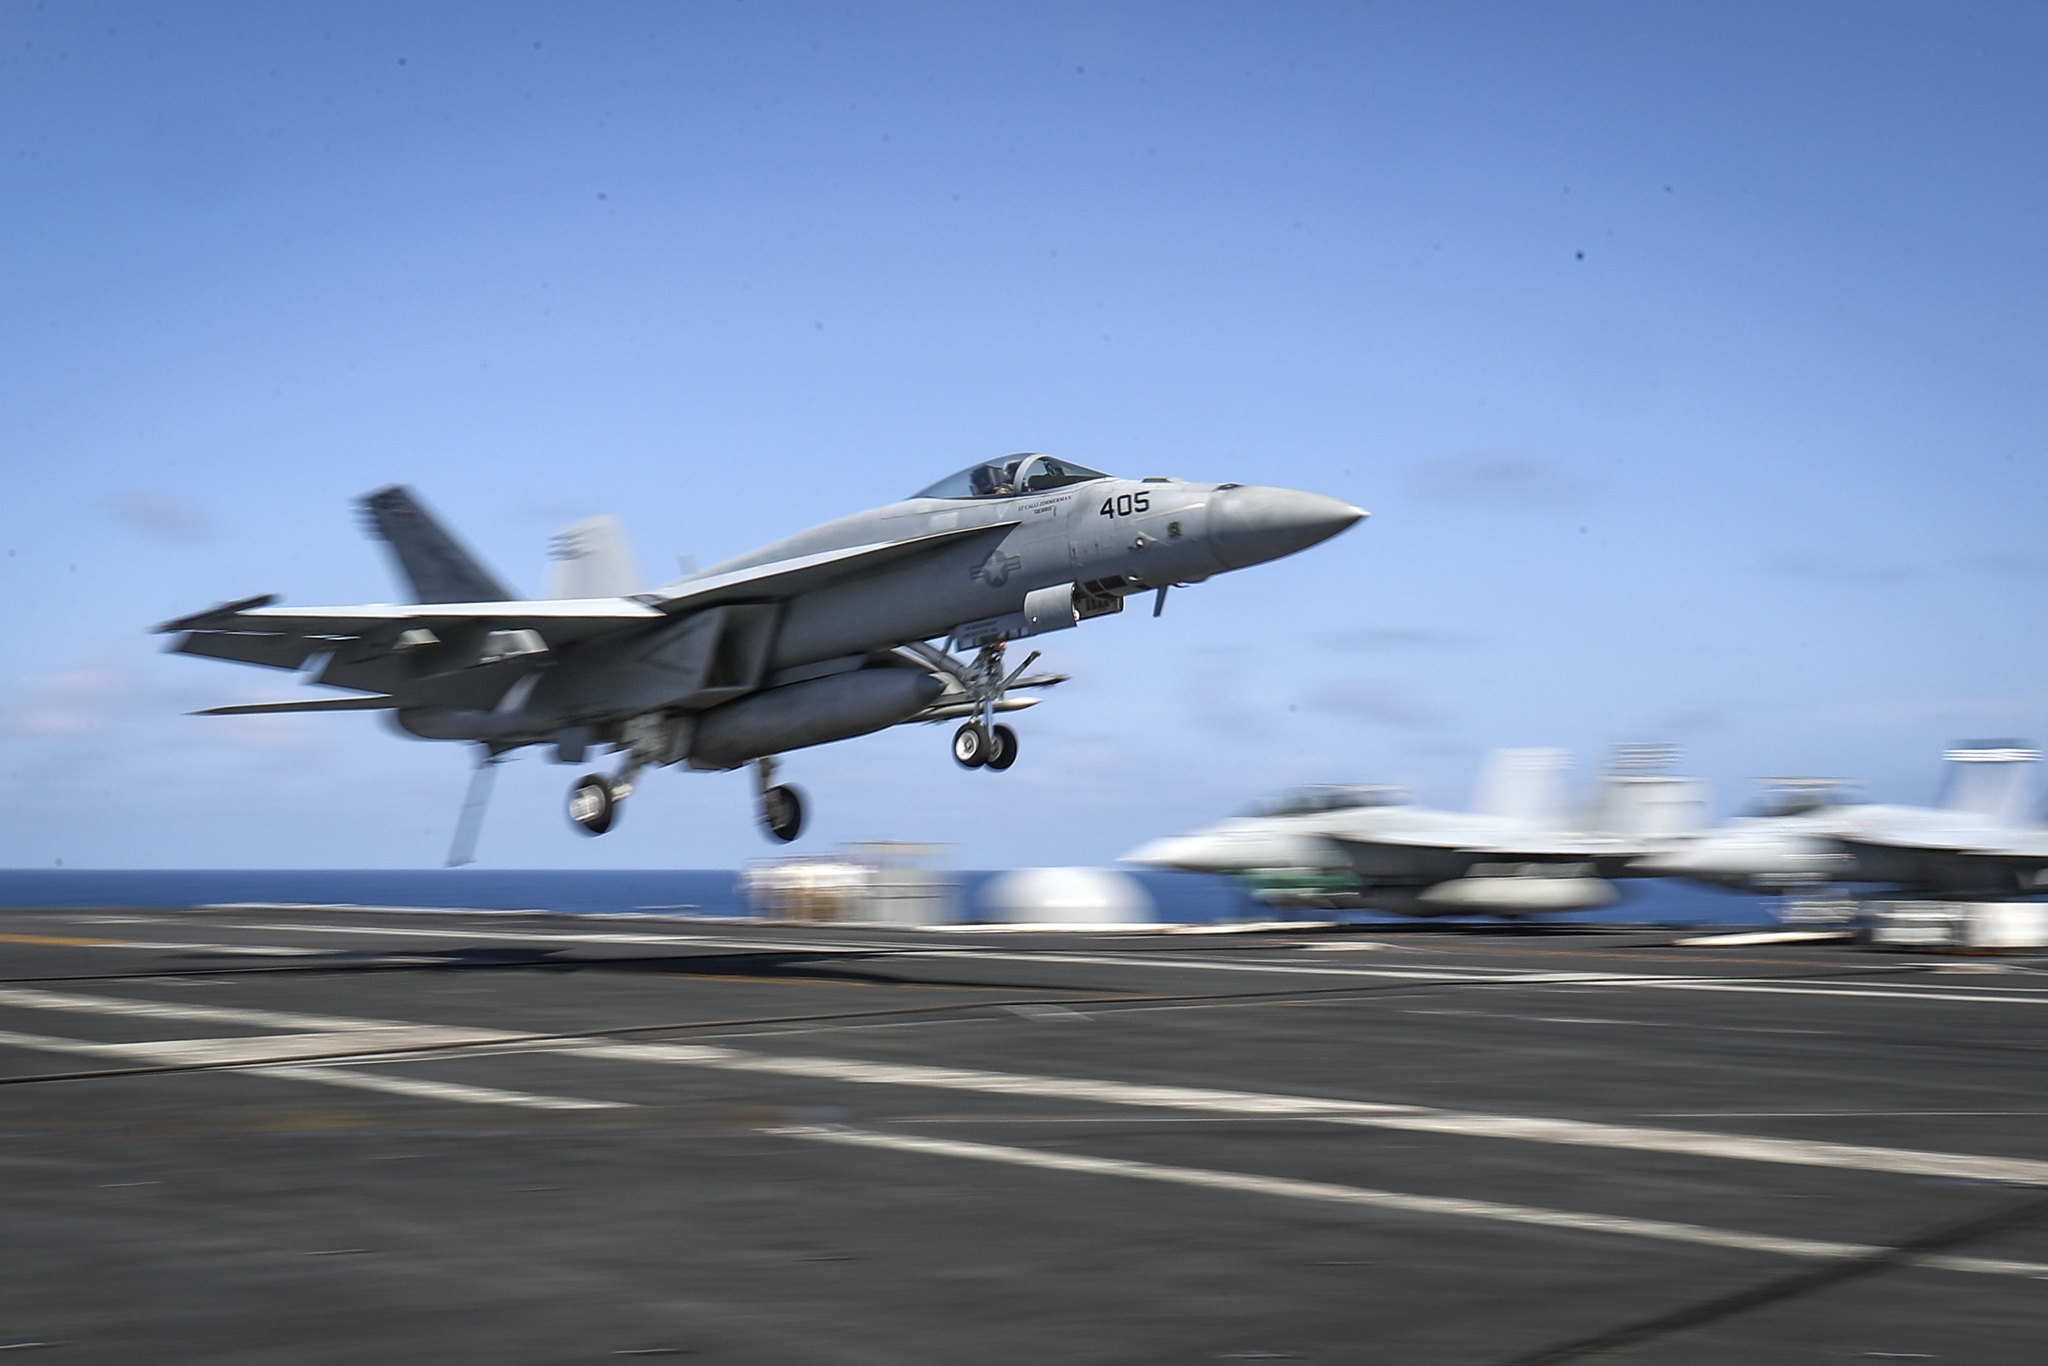 An F/A-18E Super Hornet lands on the flight deck of the Nimitz-class aircraft carrier USS Abraham Lincoln (CVN 72) on May 20, 2019, in the Arabian Sea. (Mass Communication Specialist 3rd Class Jeff Sherman/Navy)